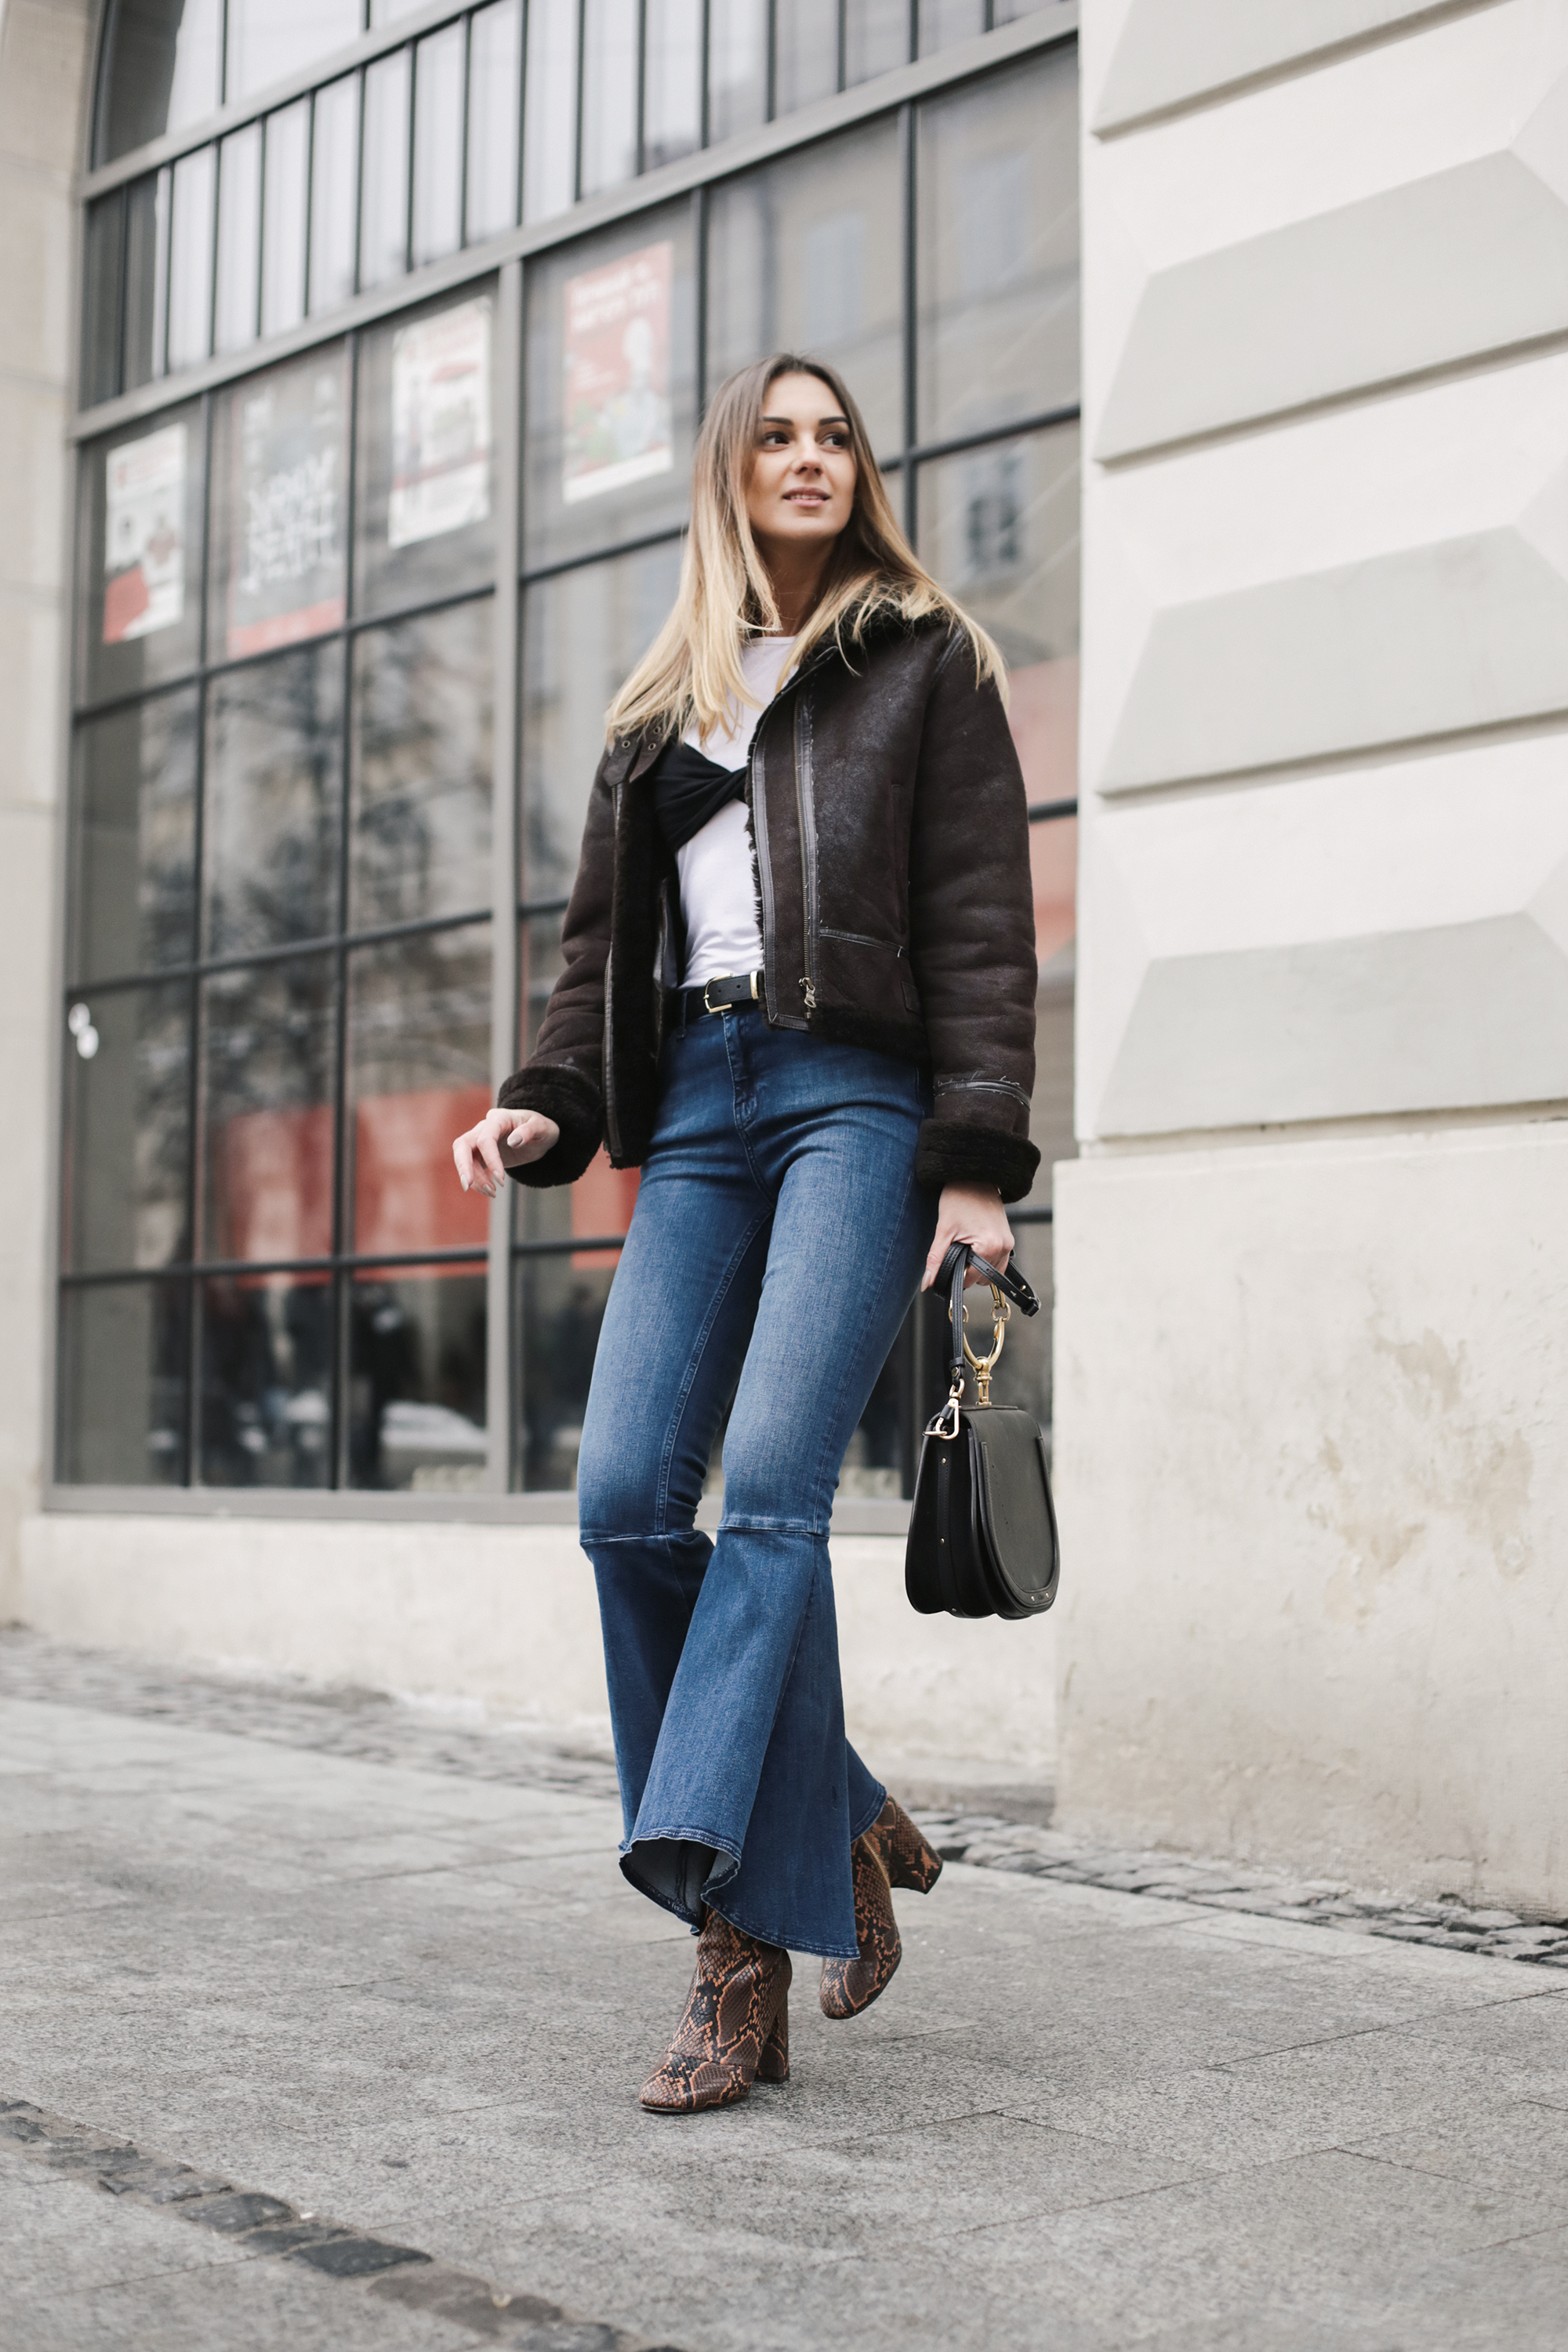 flare-jeans-outfit-steet-style-boho